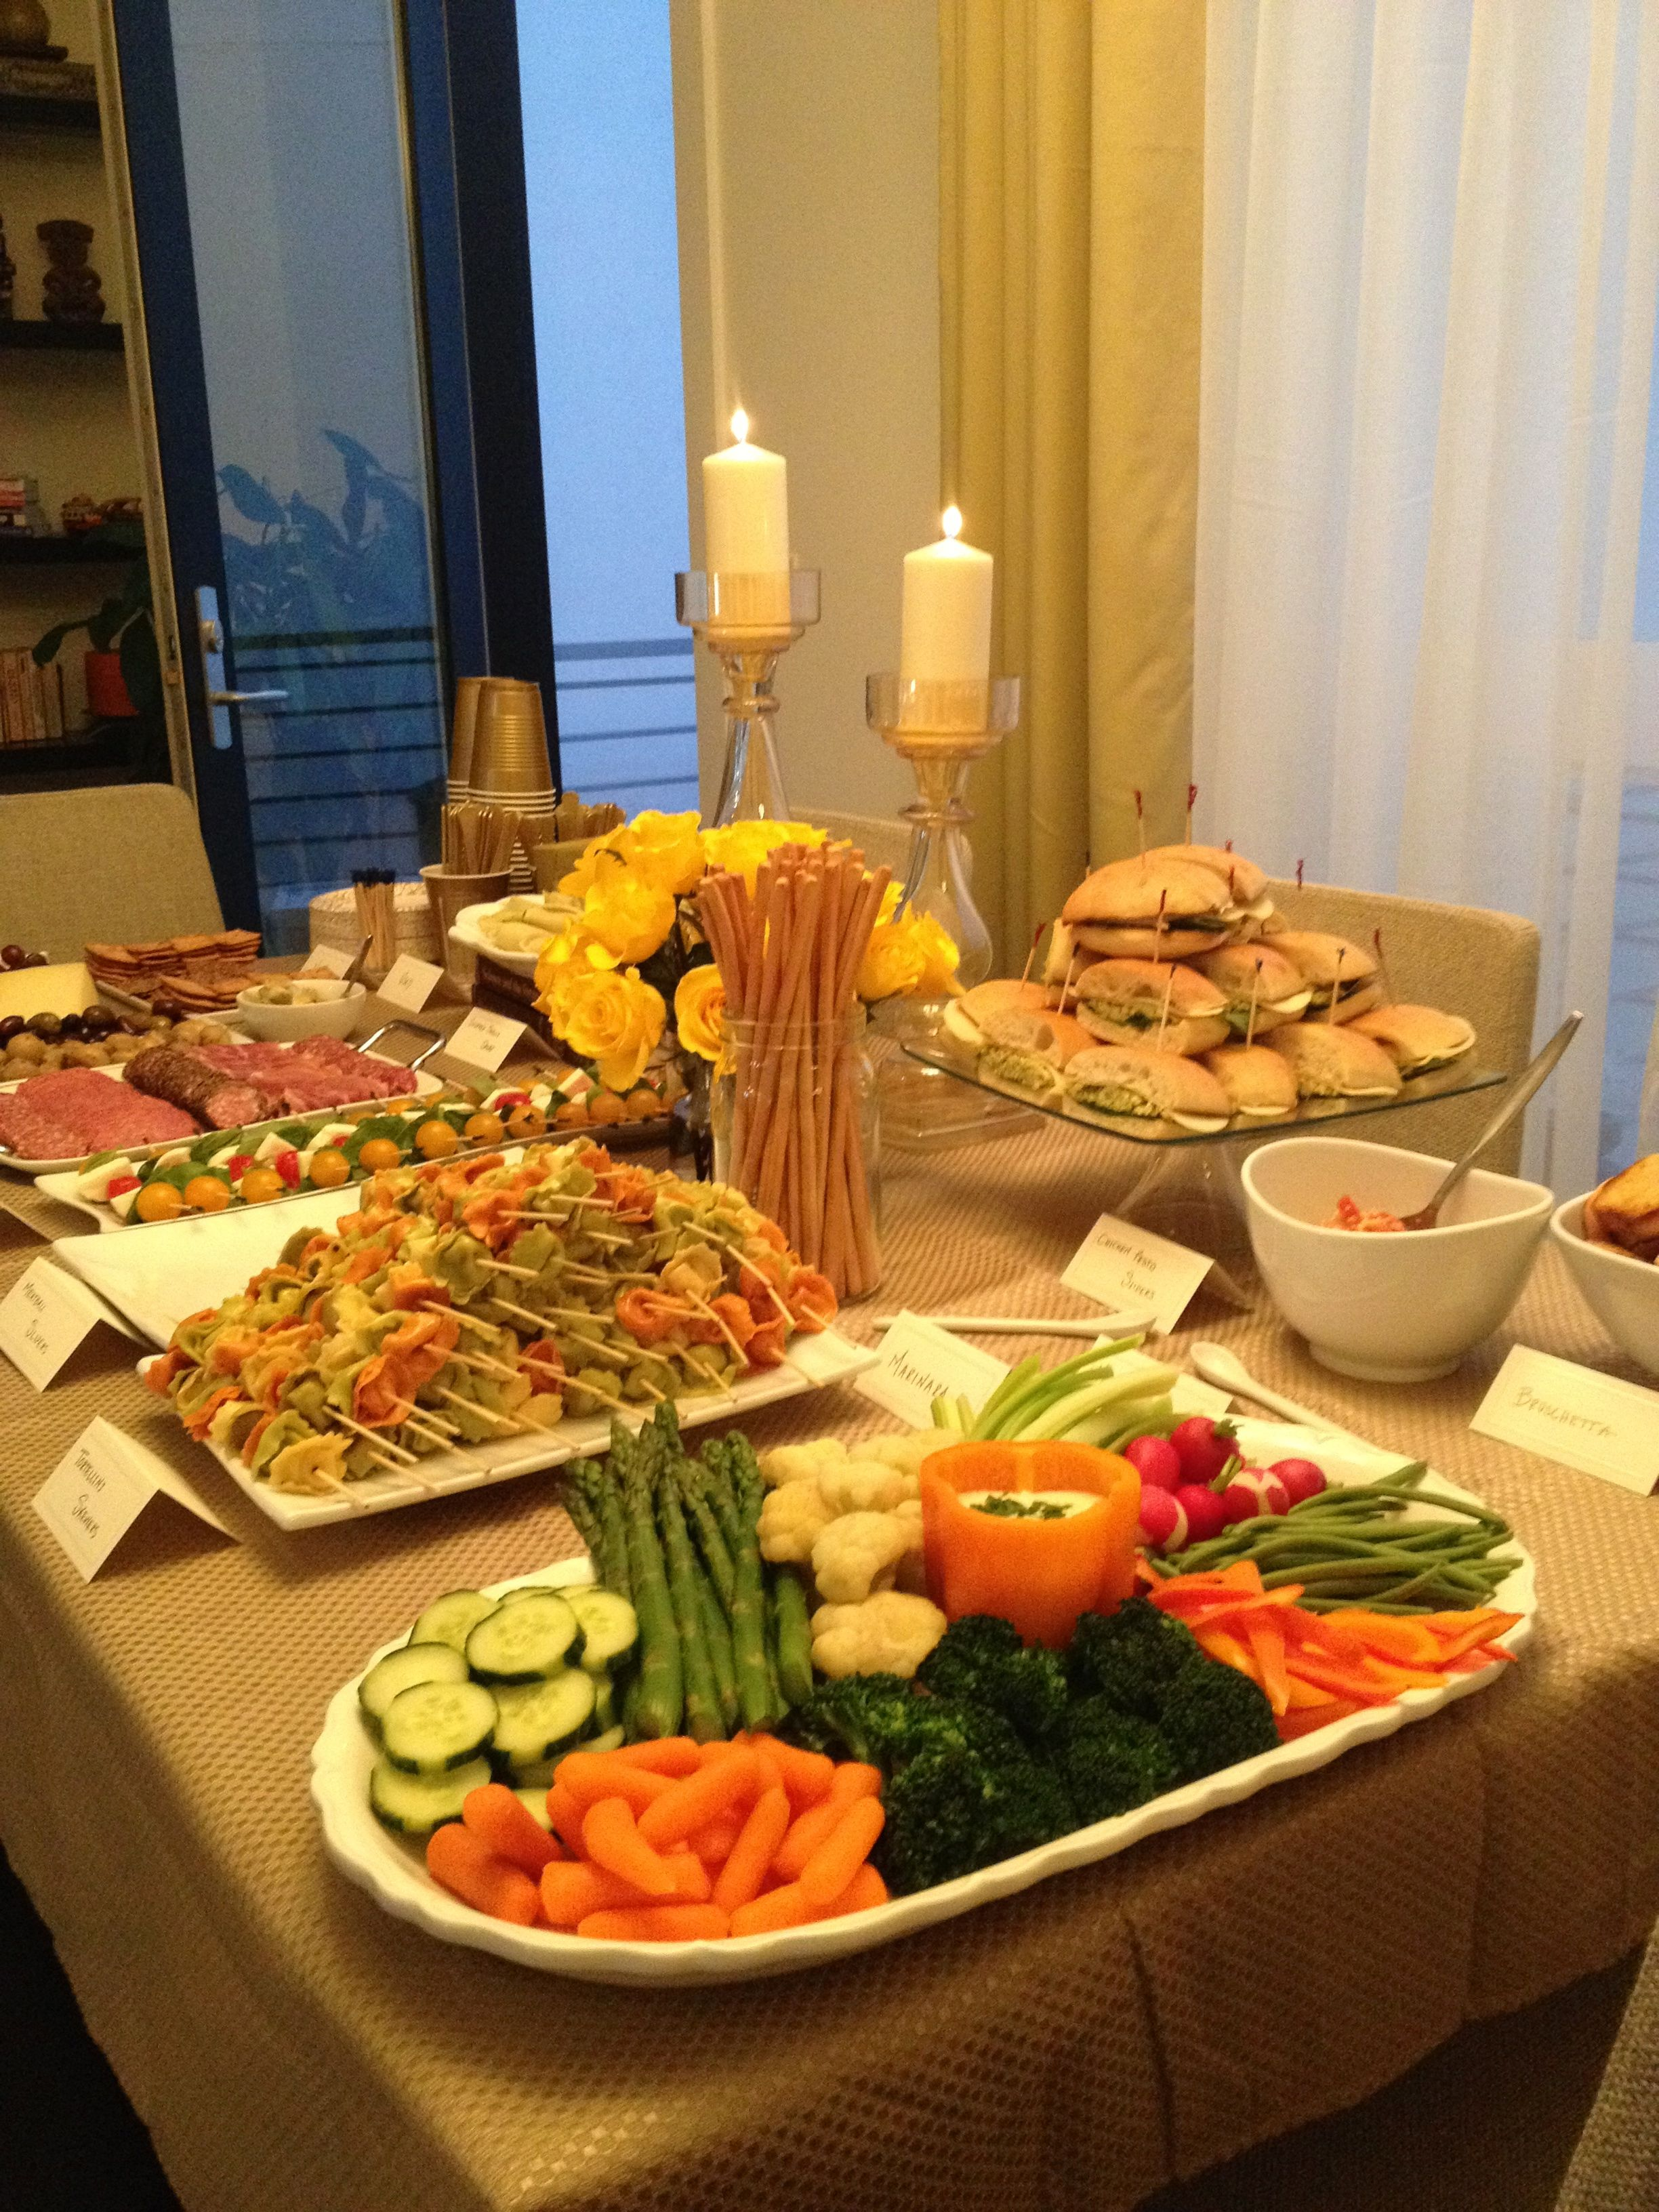 House warming party denver finger food ideas food for Housewarming food ideas